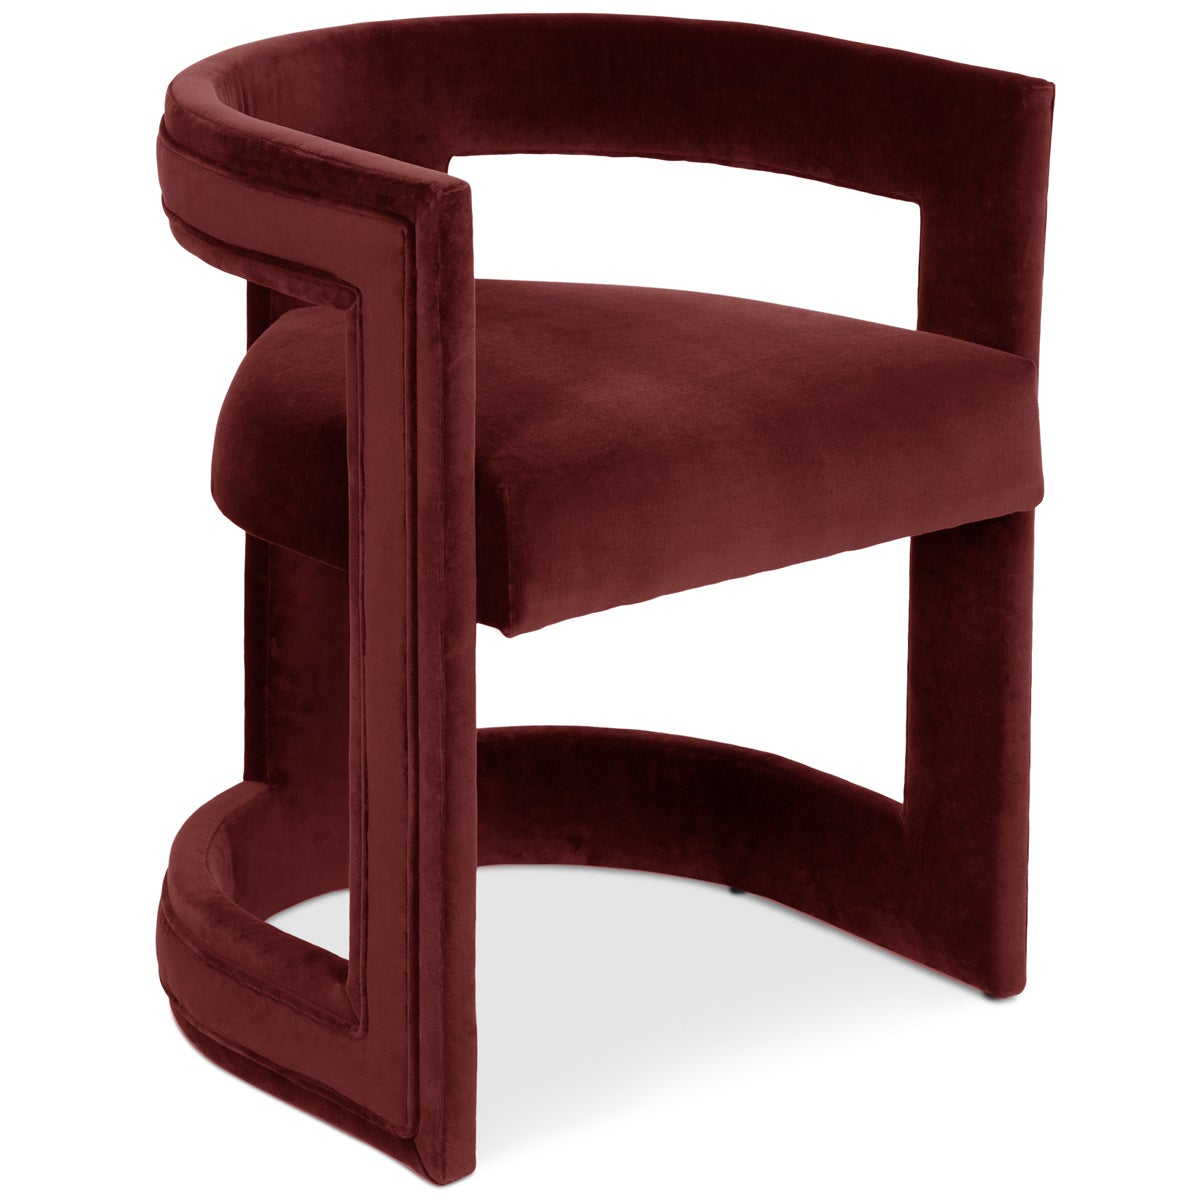 Positano Dining Chair - ModShop1.com